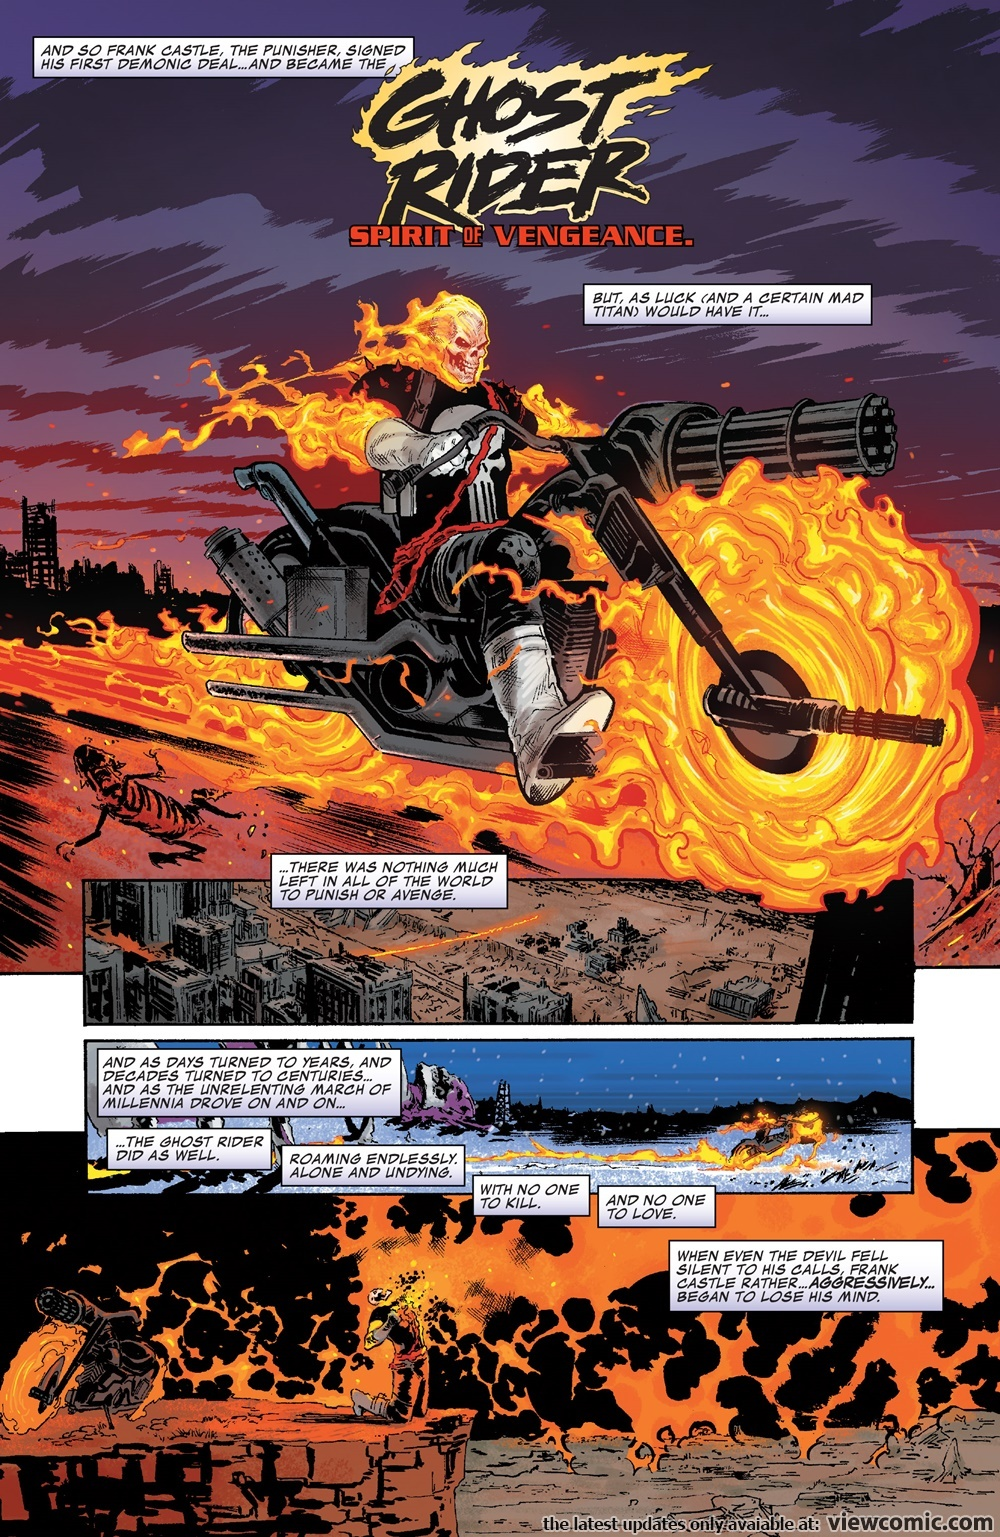 Who would win, Johnny Blaze or Frank Castle (The Rider)? - Quora